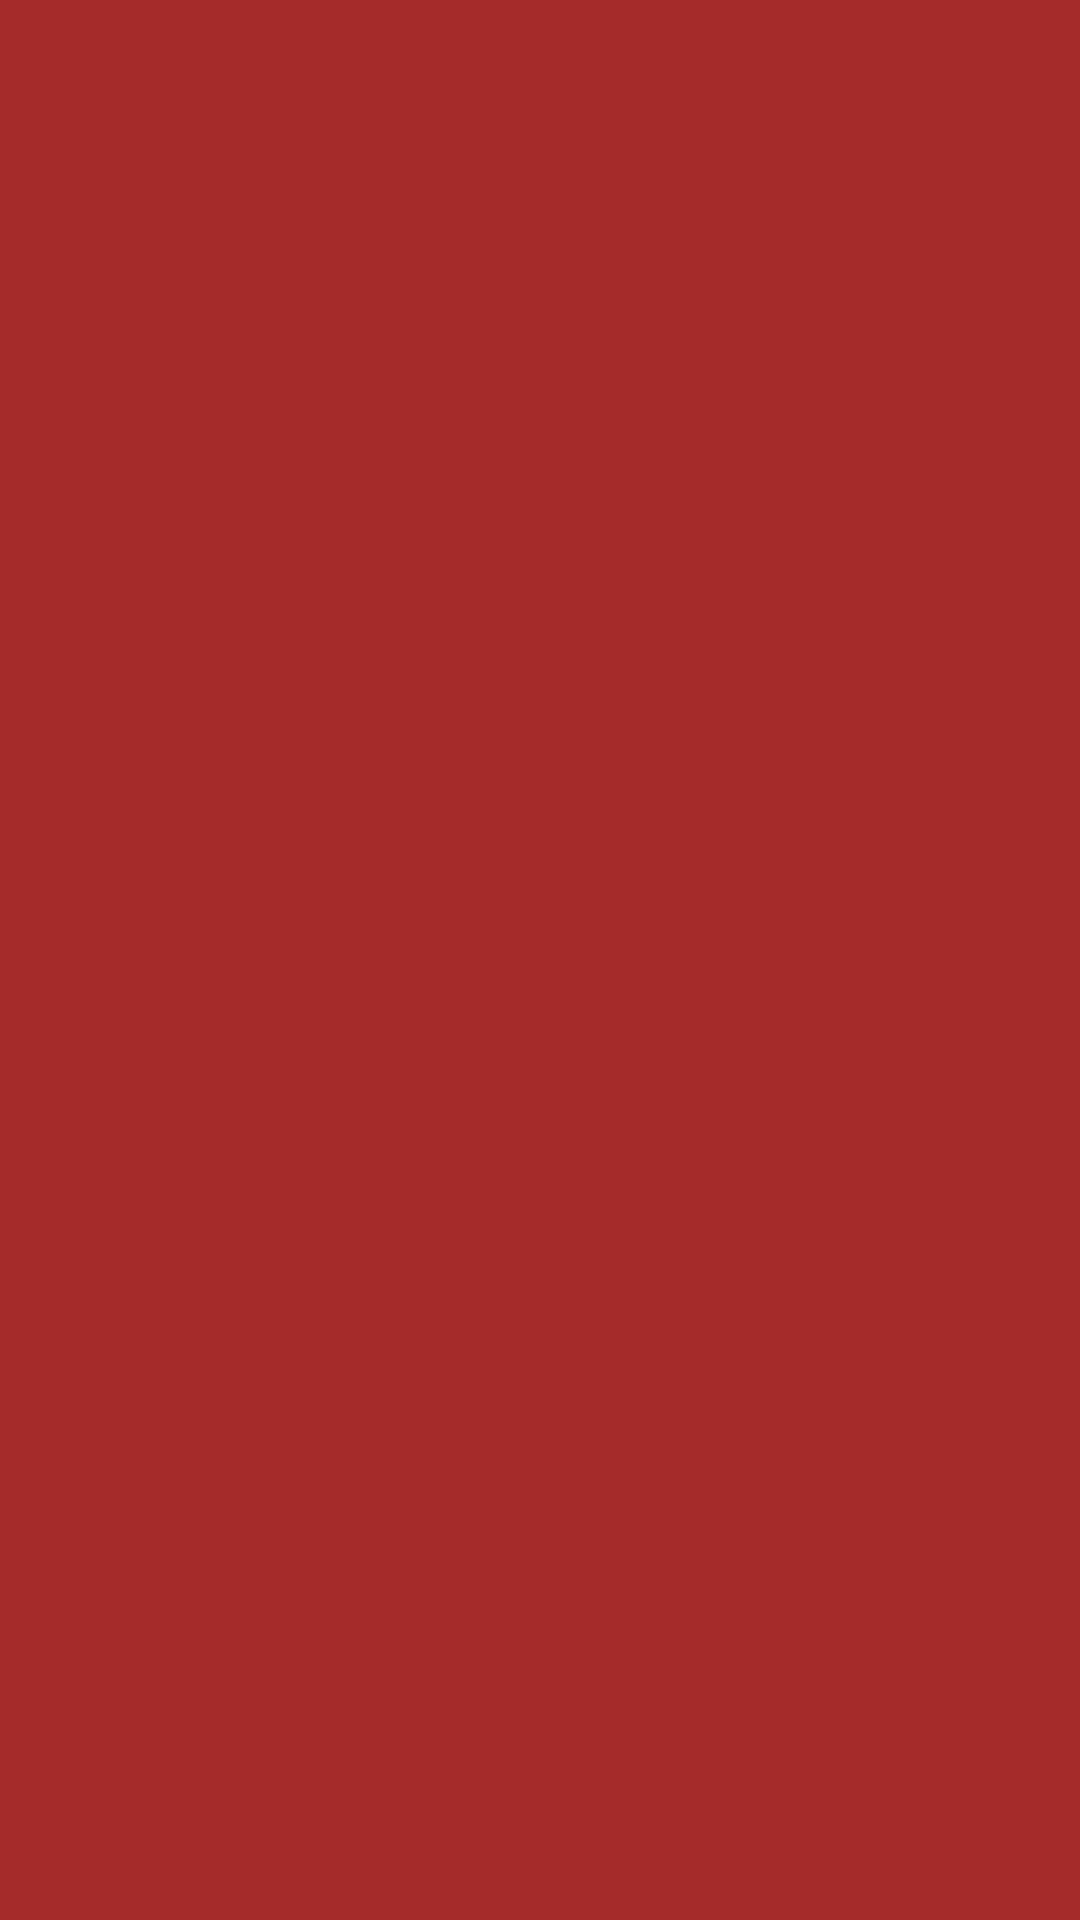 1080x1920 Red-brown Solid Color Background